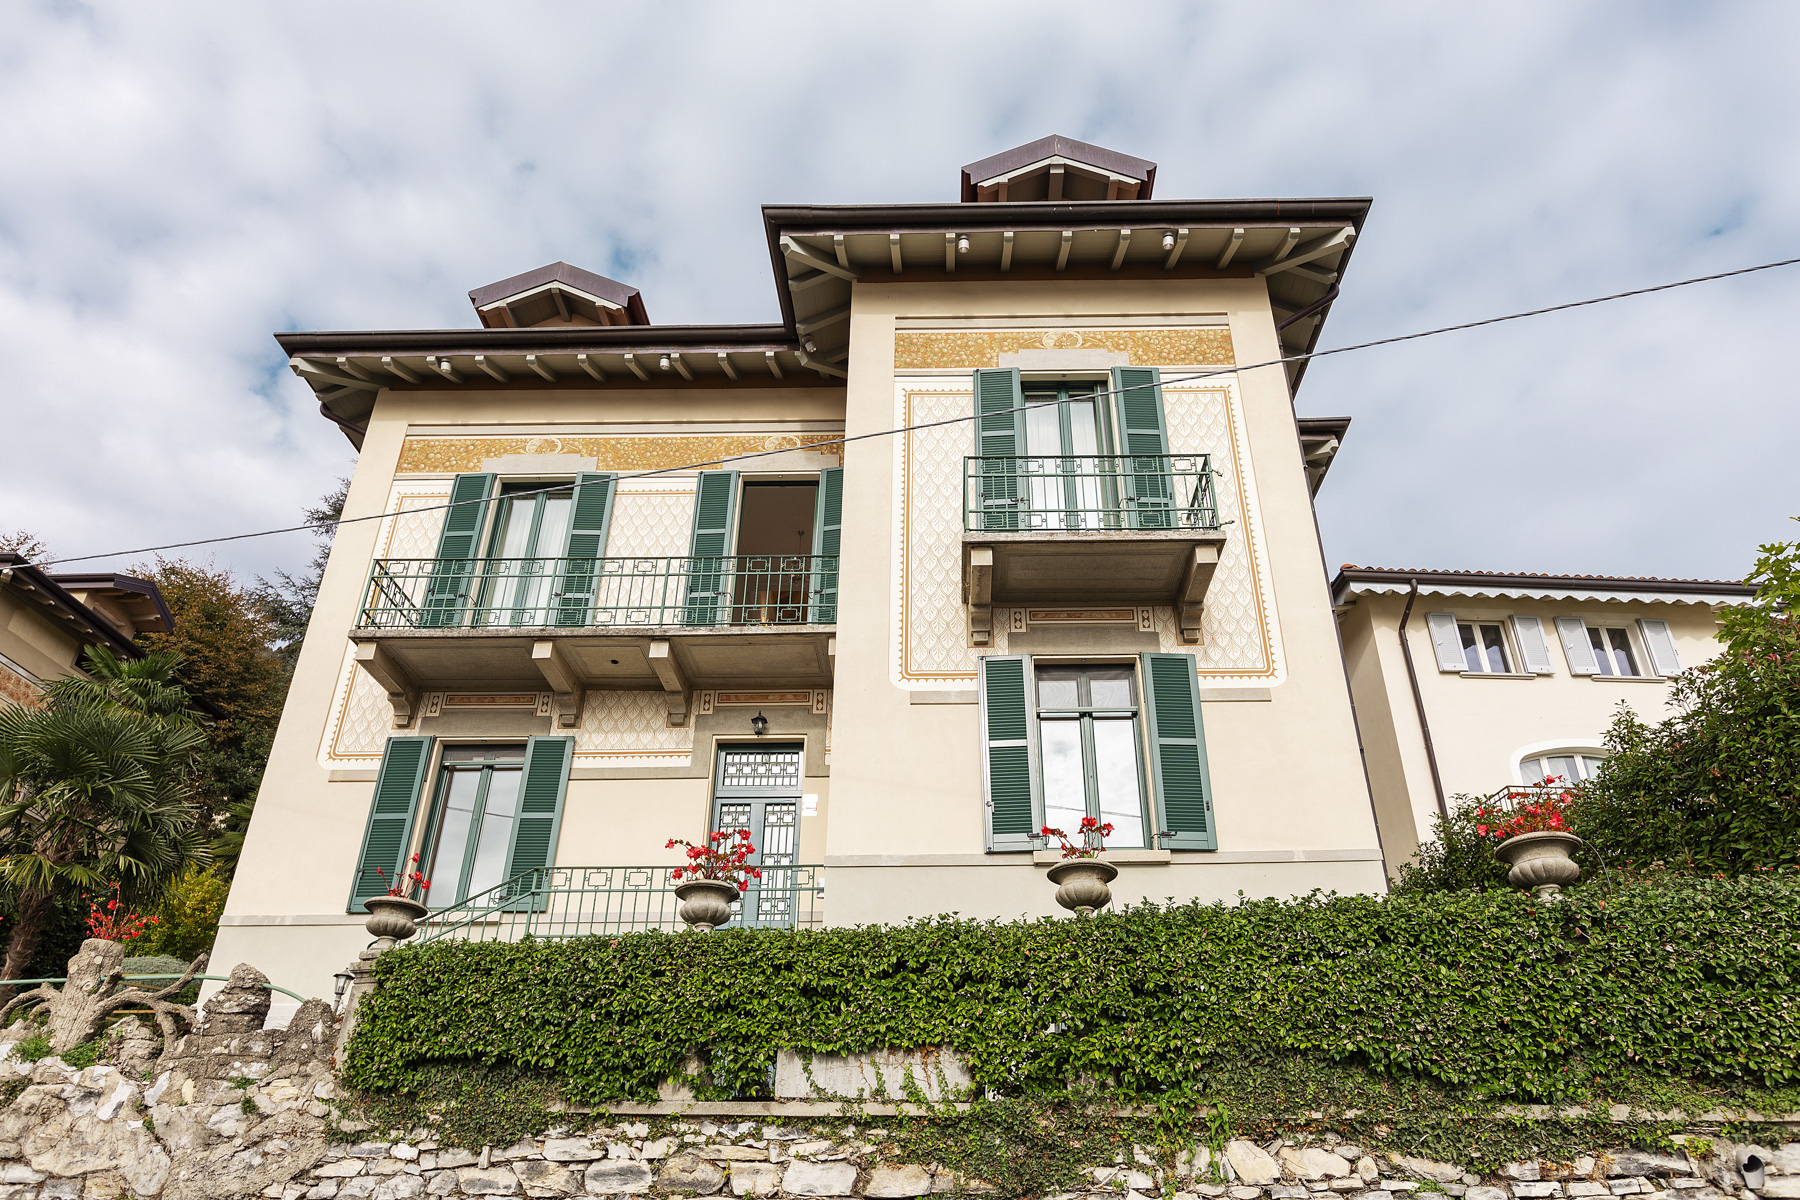 Property for Sale at Beautiful villa with wonderful view over the city and the Lake Como Cernobbio, Como Italy